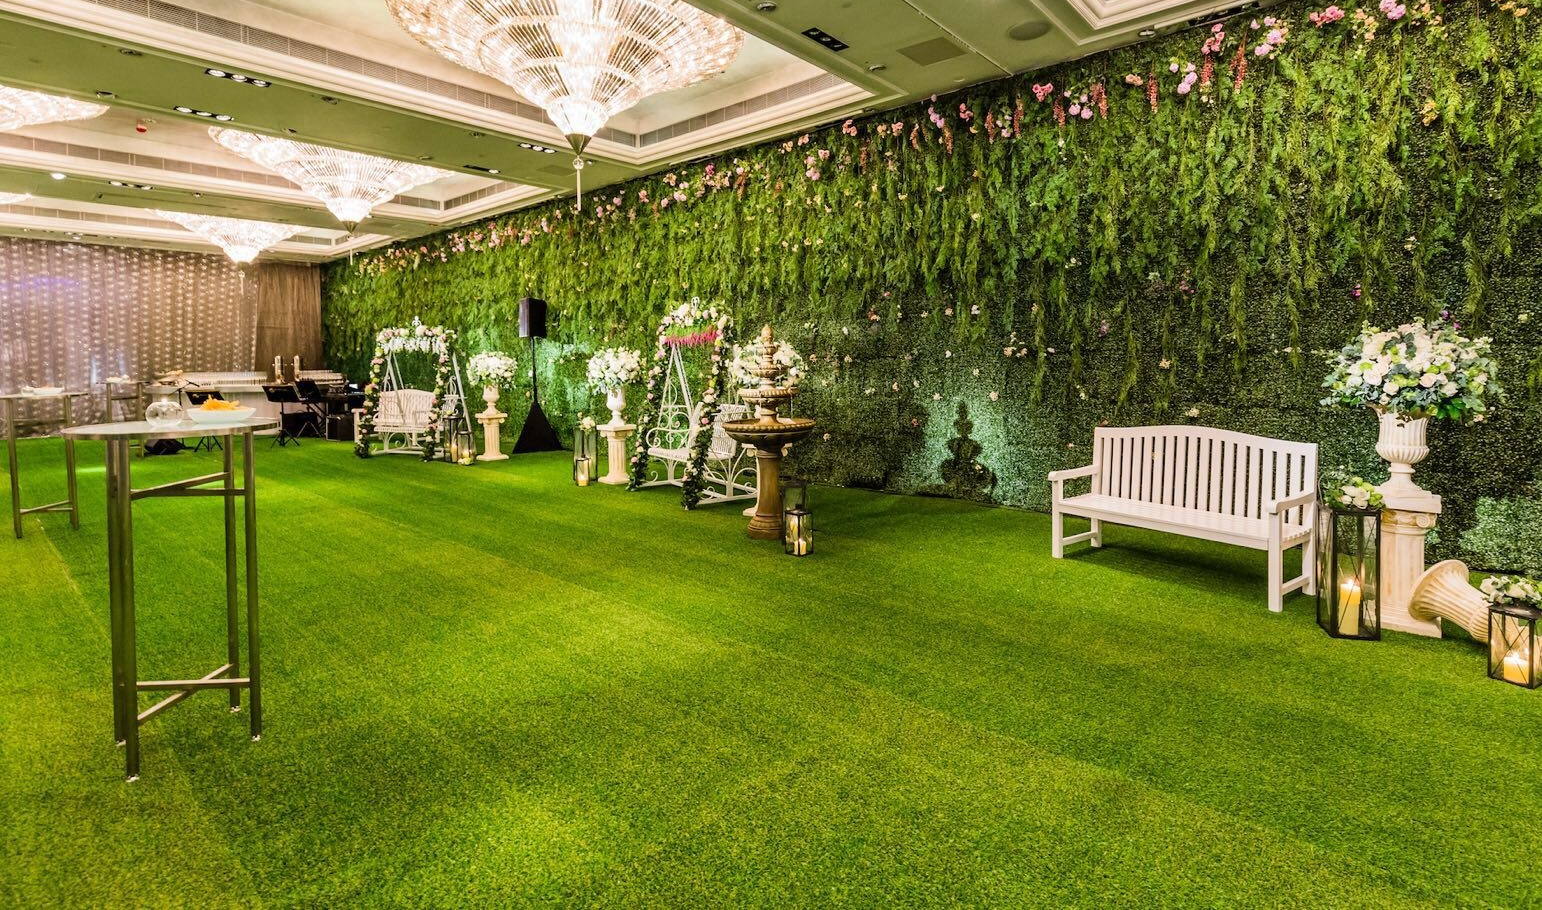 7 Ways to Use Indoor Artificial Grass